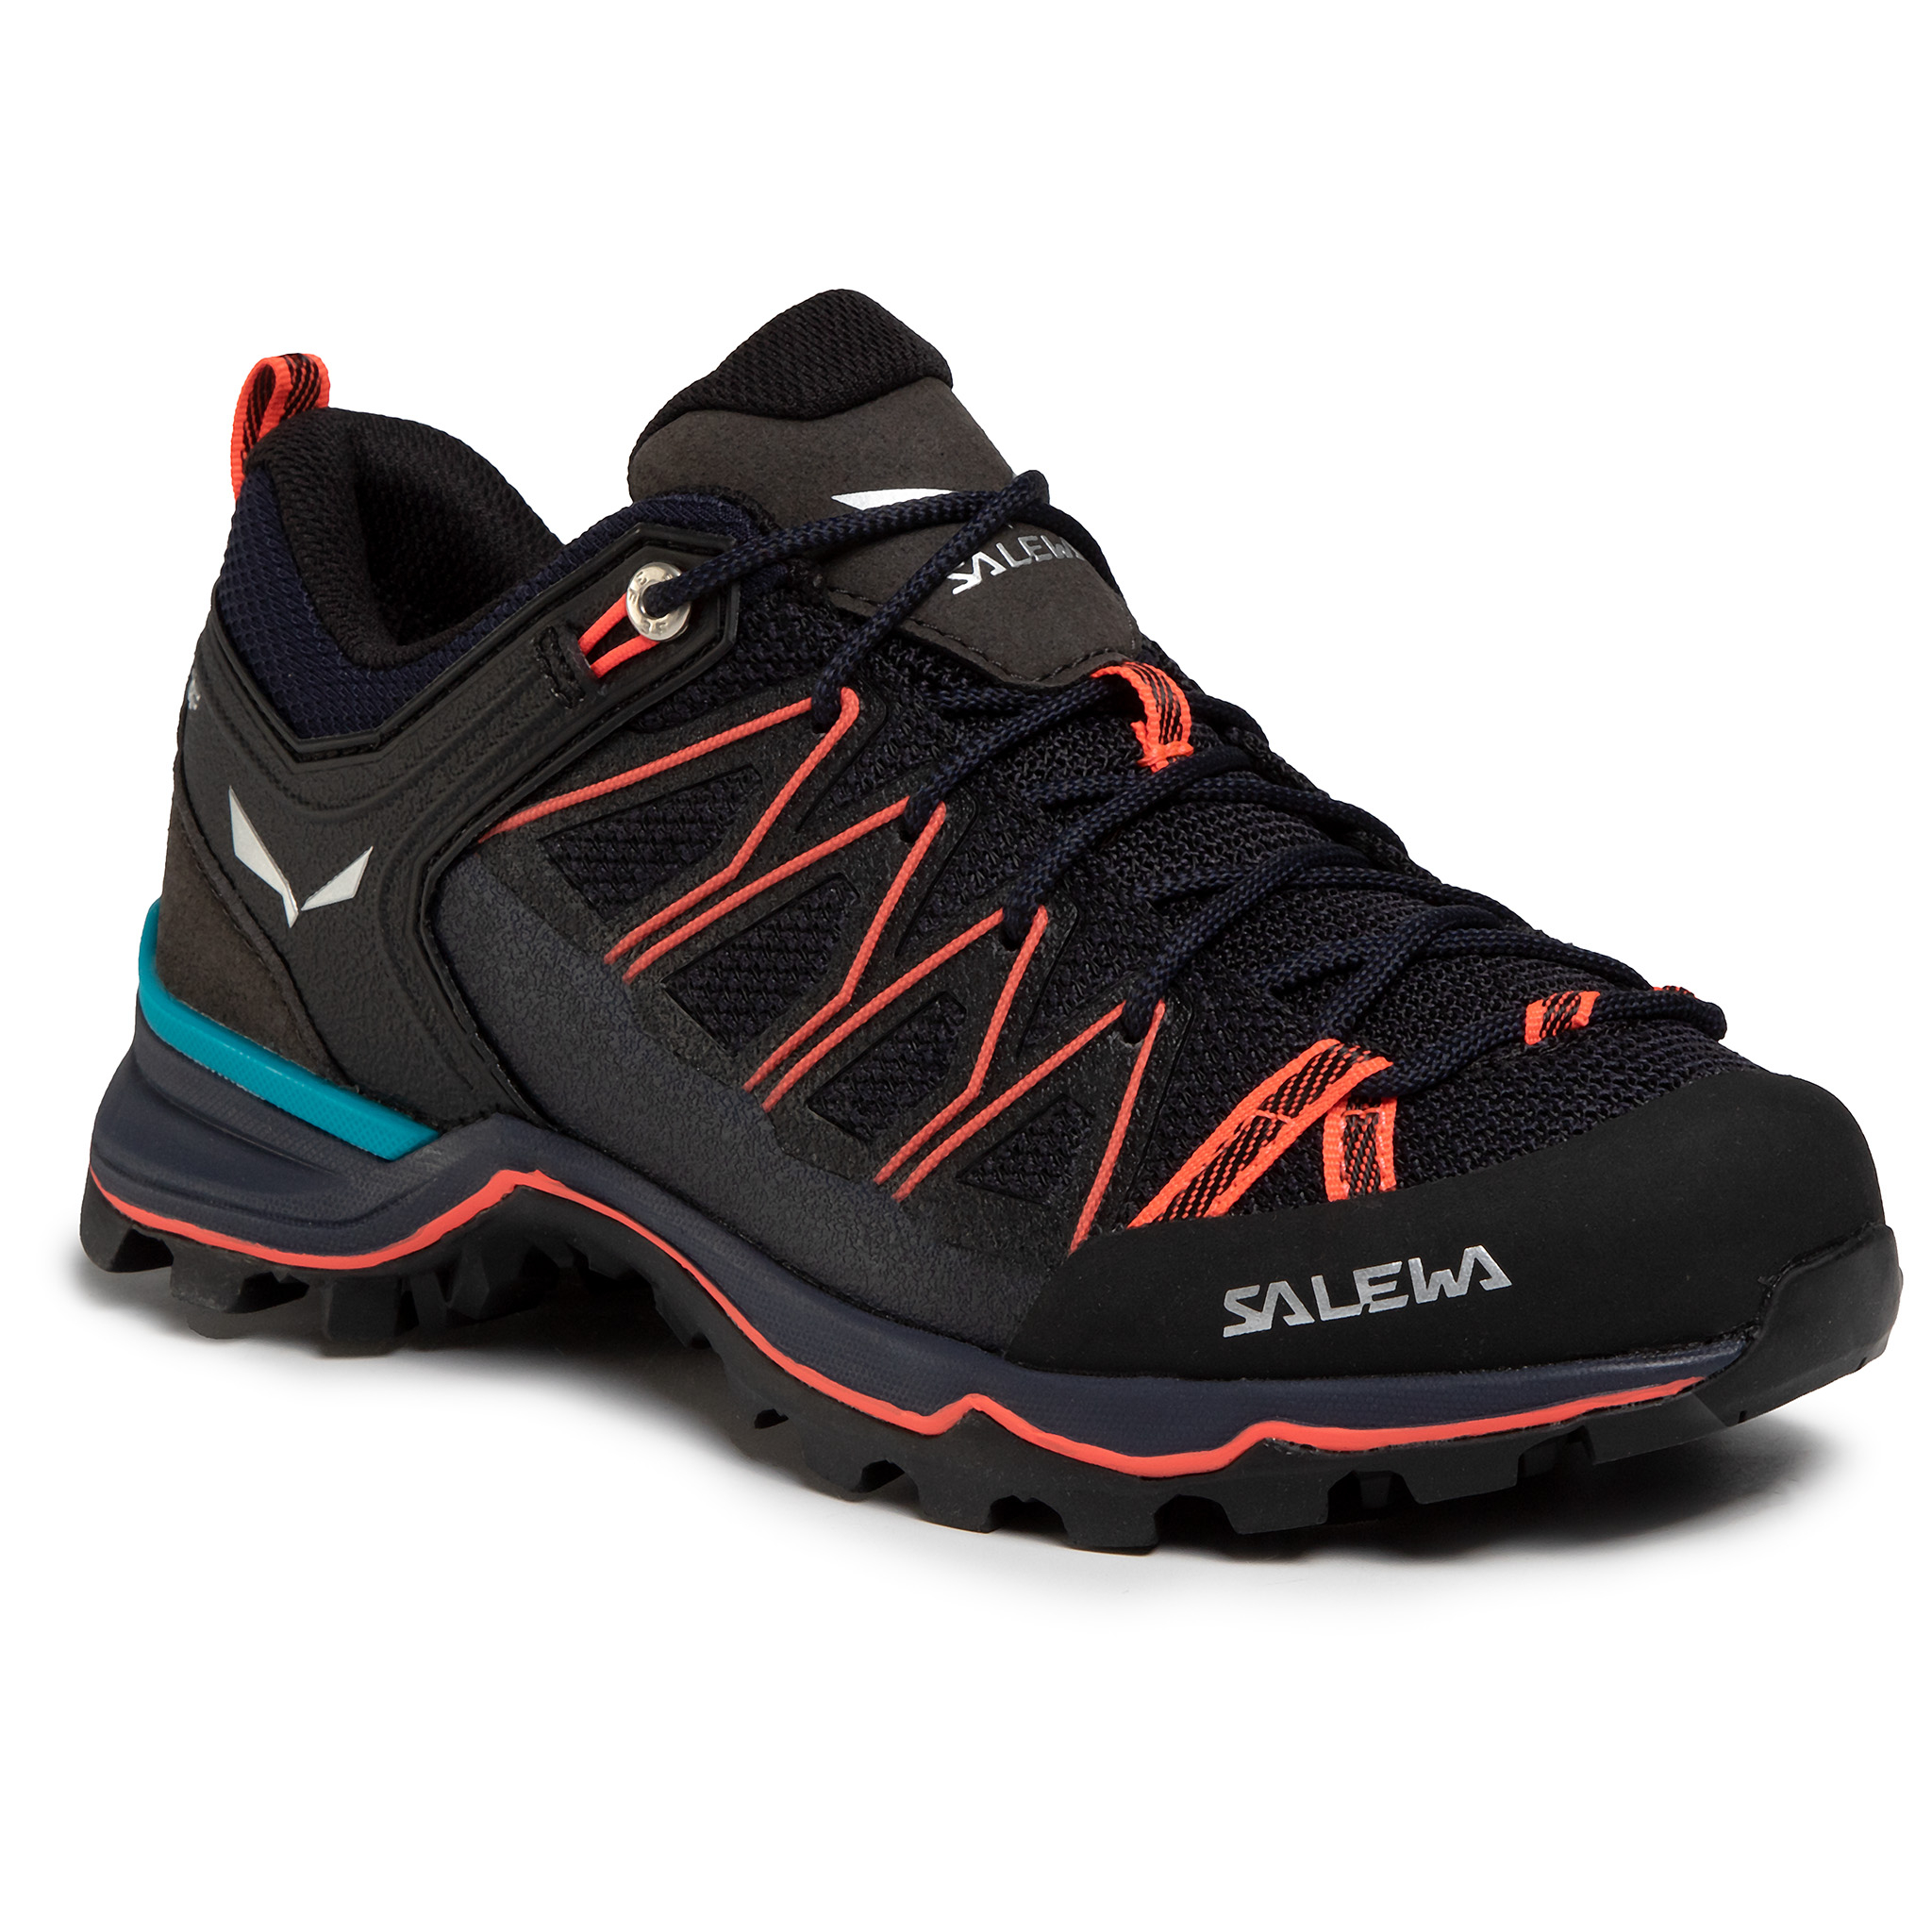 Trekkings Salewa - Ws Mtn Trainer Lite 61364-3993 Premium Navy/Fluo Coral imagine epantofi.ro 2021